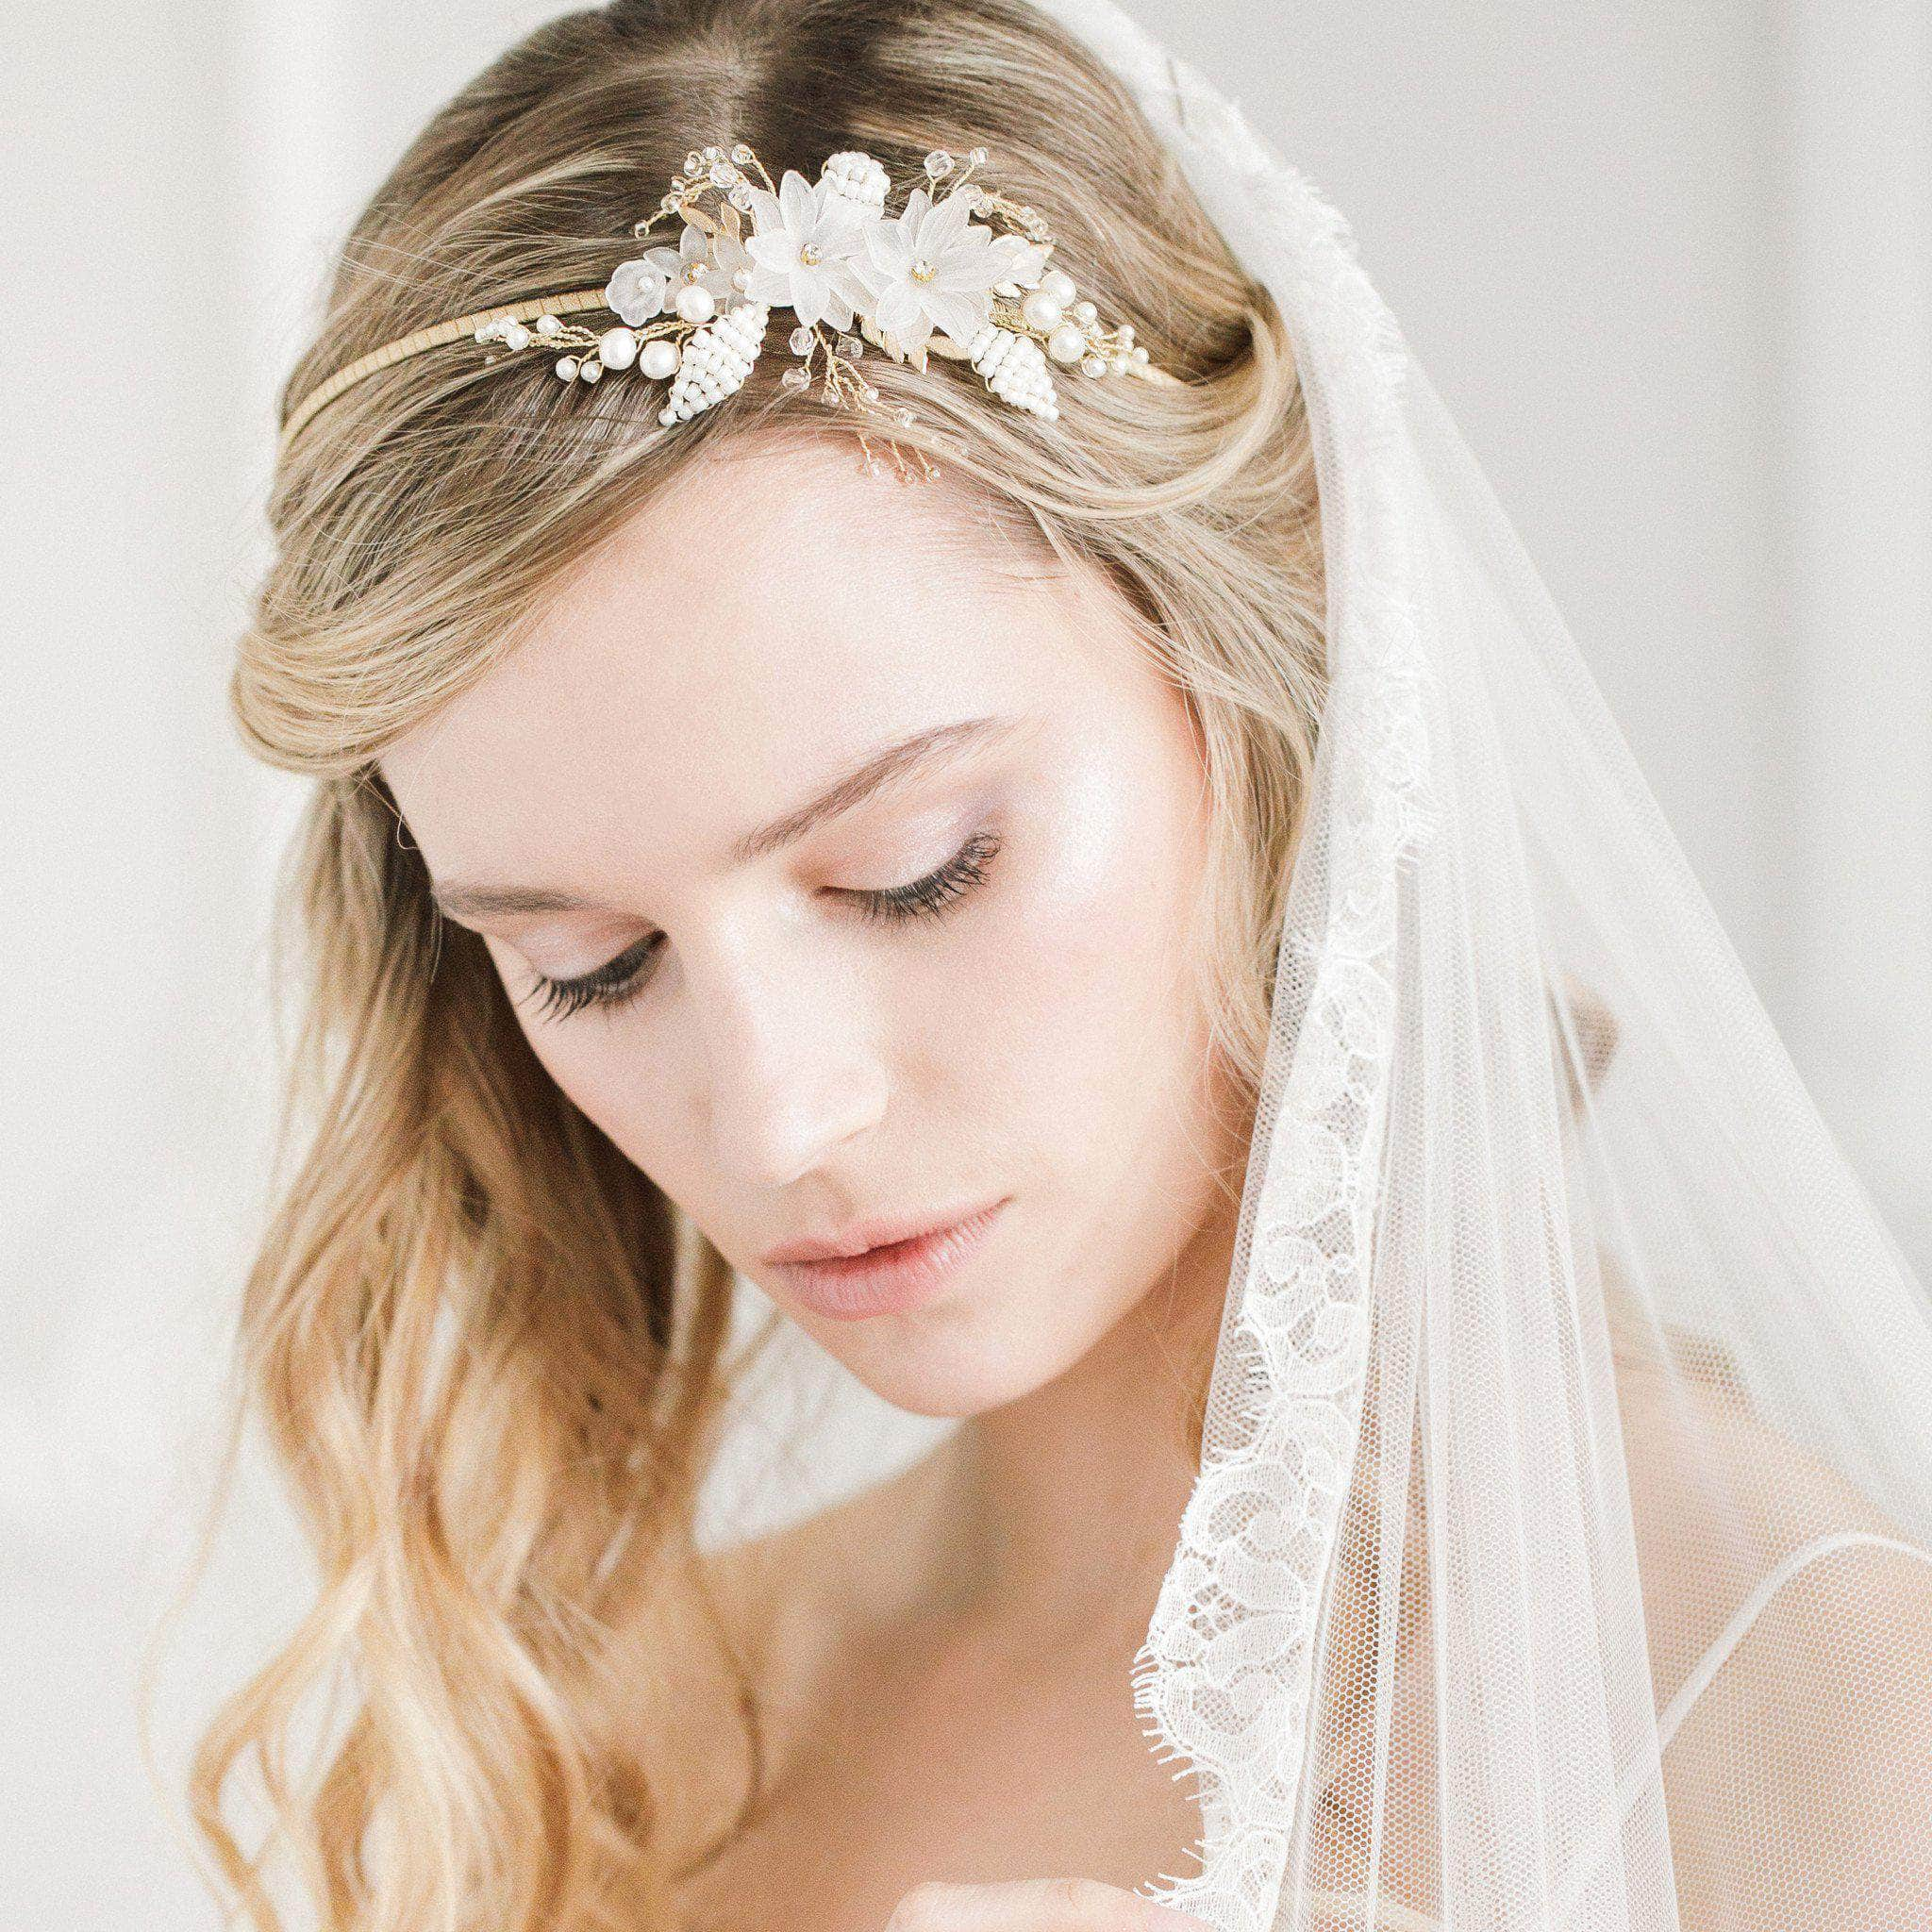 Flower and leaf botanical wedding headband 'Rani' | Britten Weddings